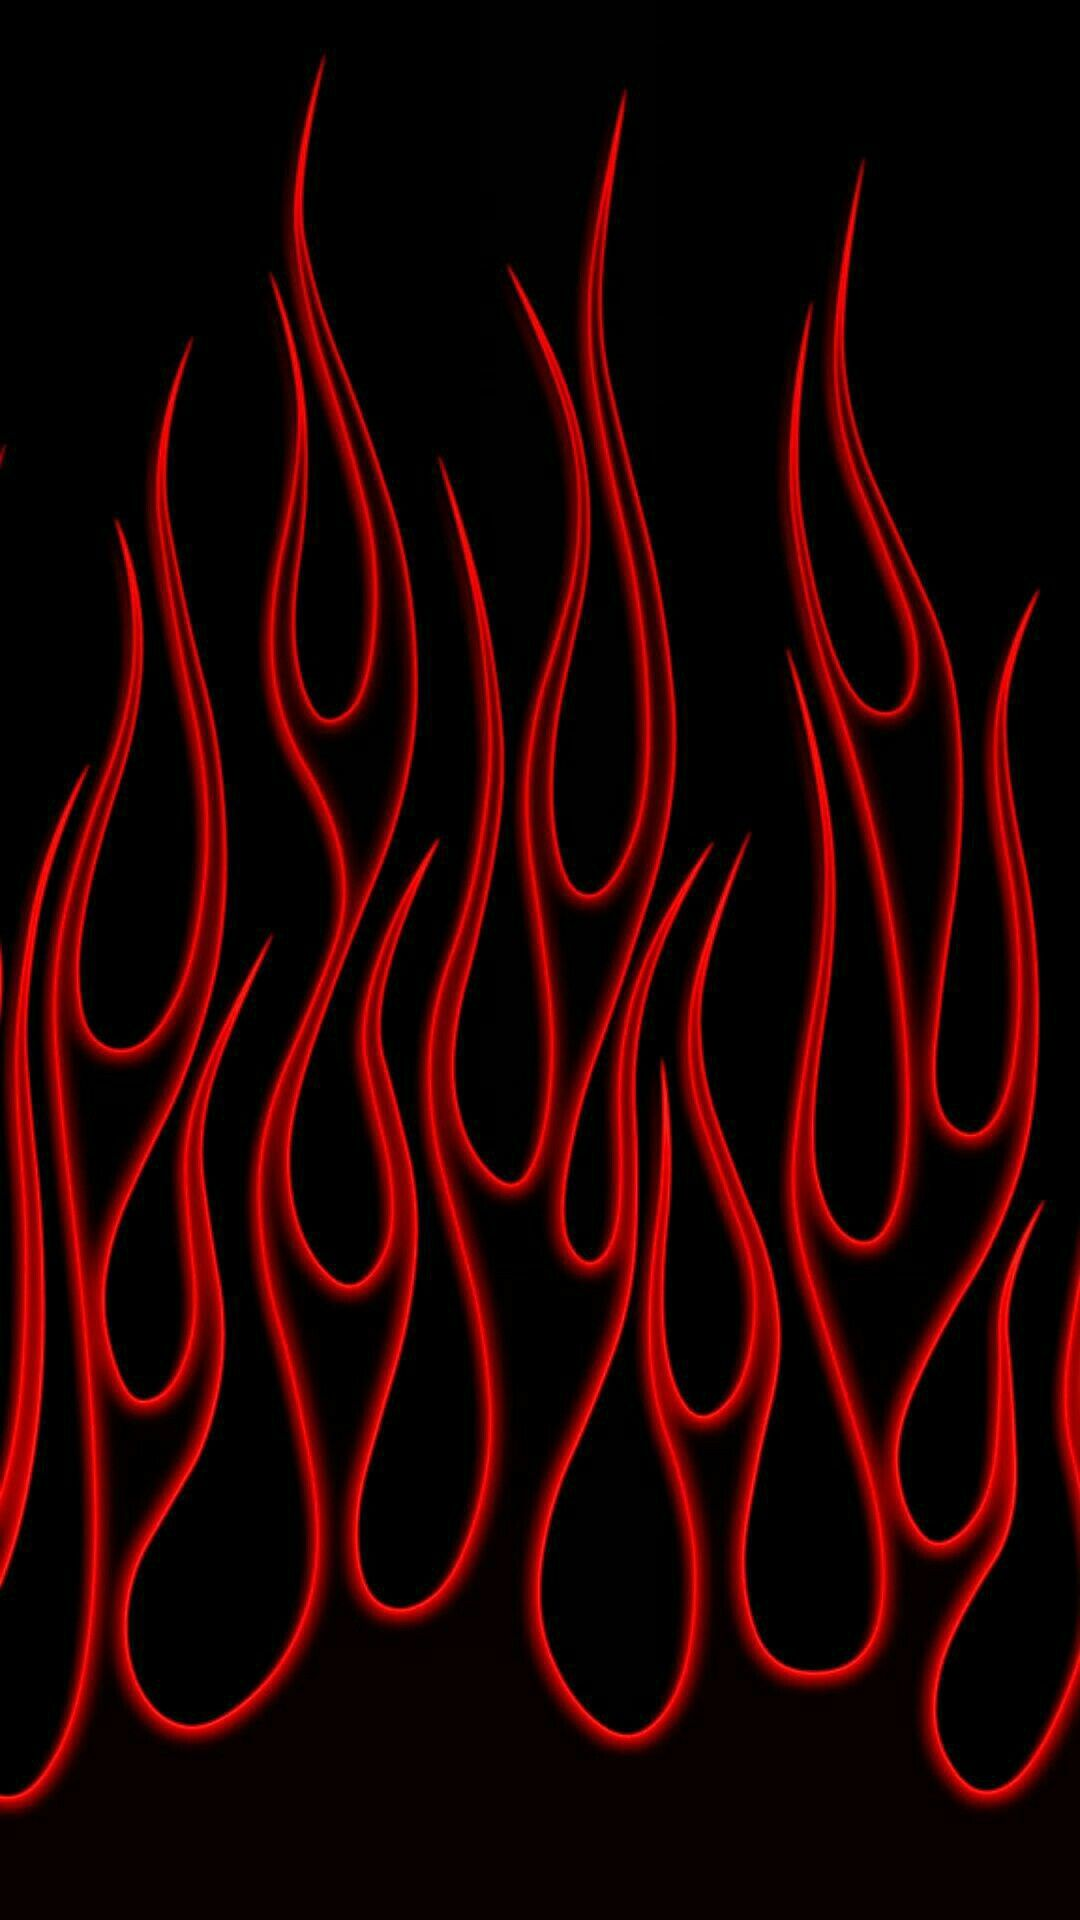 Pin by Hendie Purwiliarto on Phone Backgrounds 15 Flame